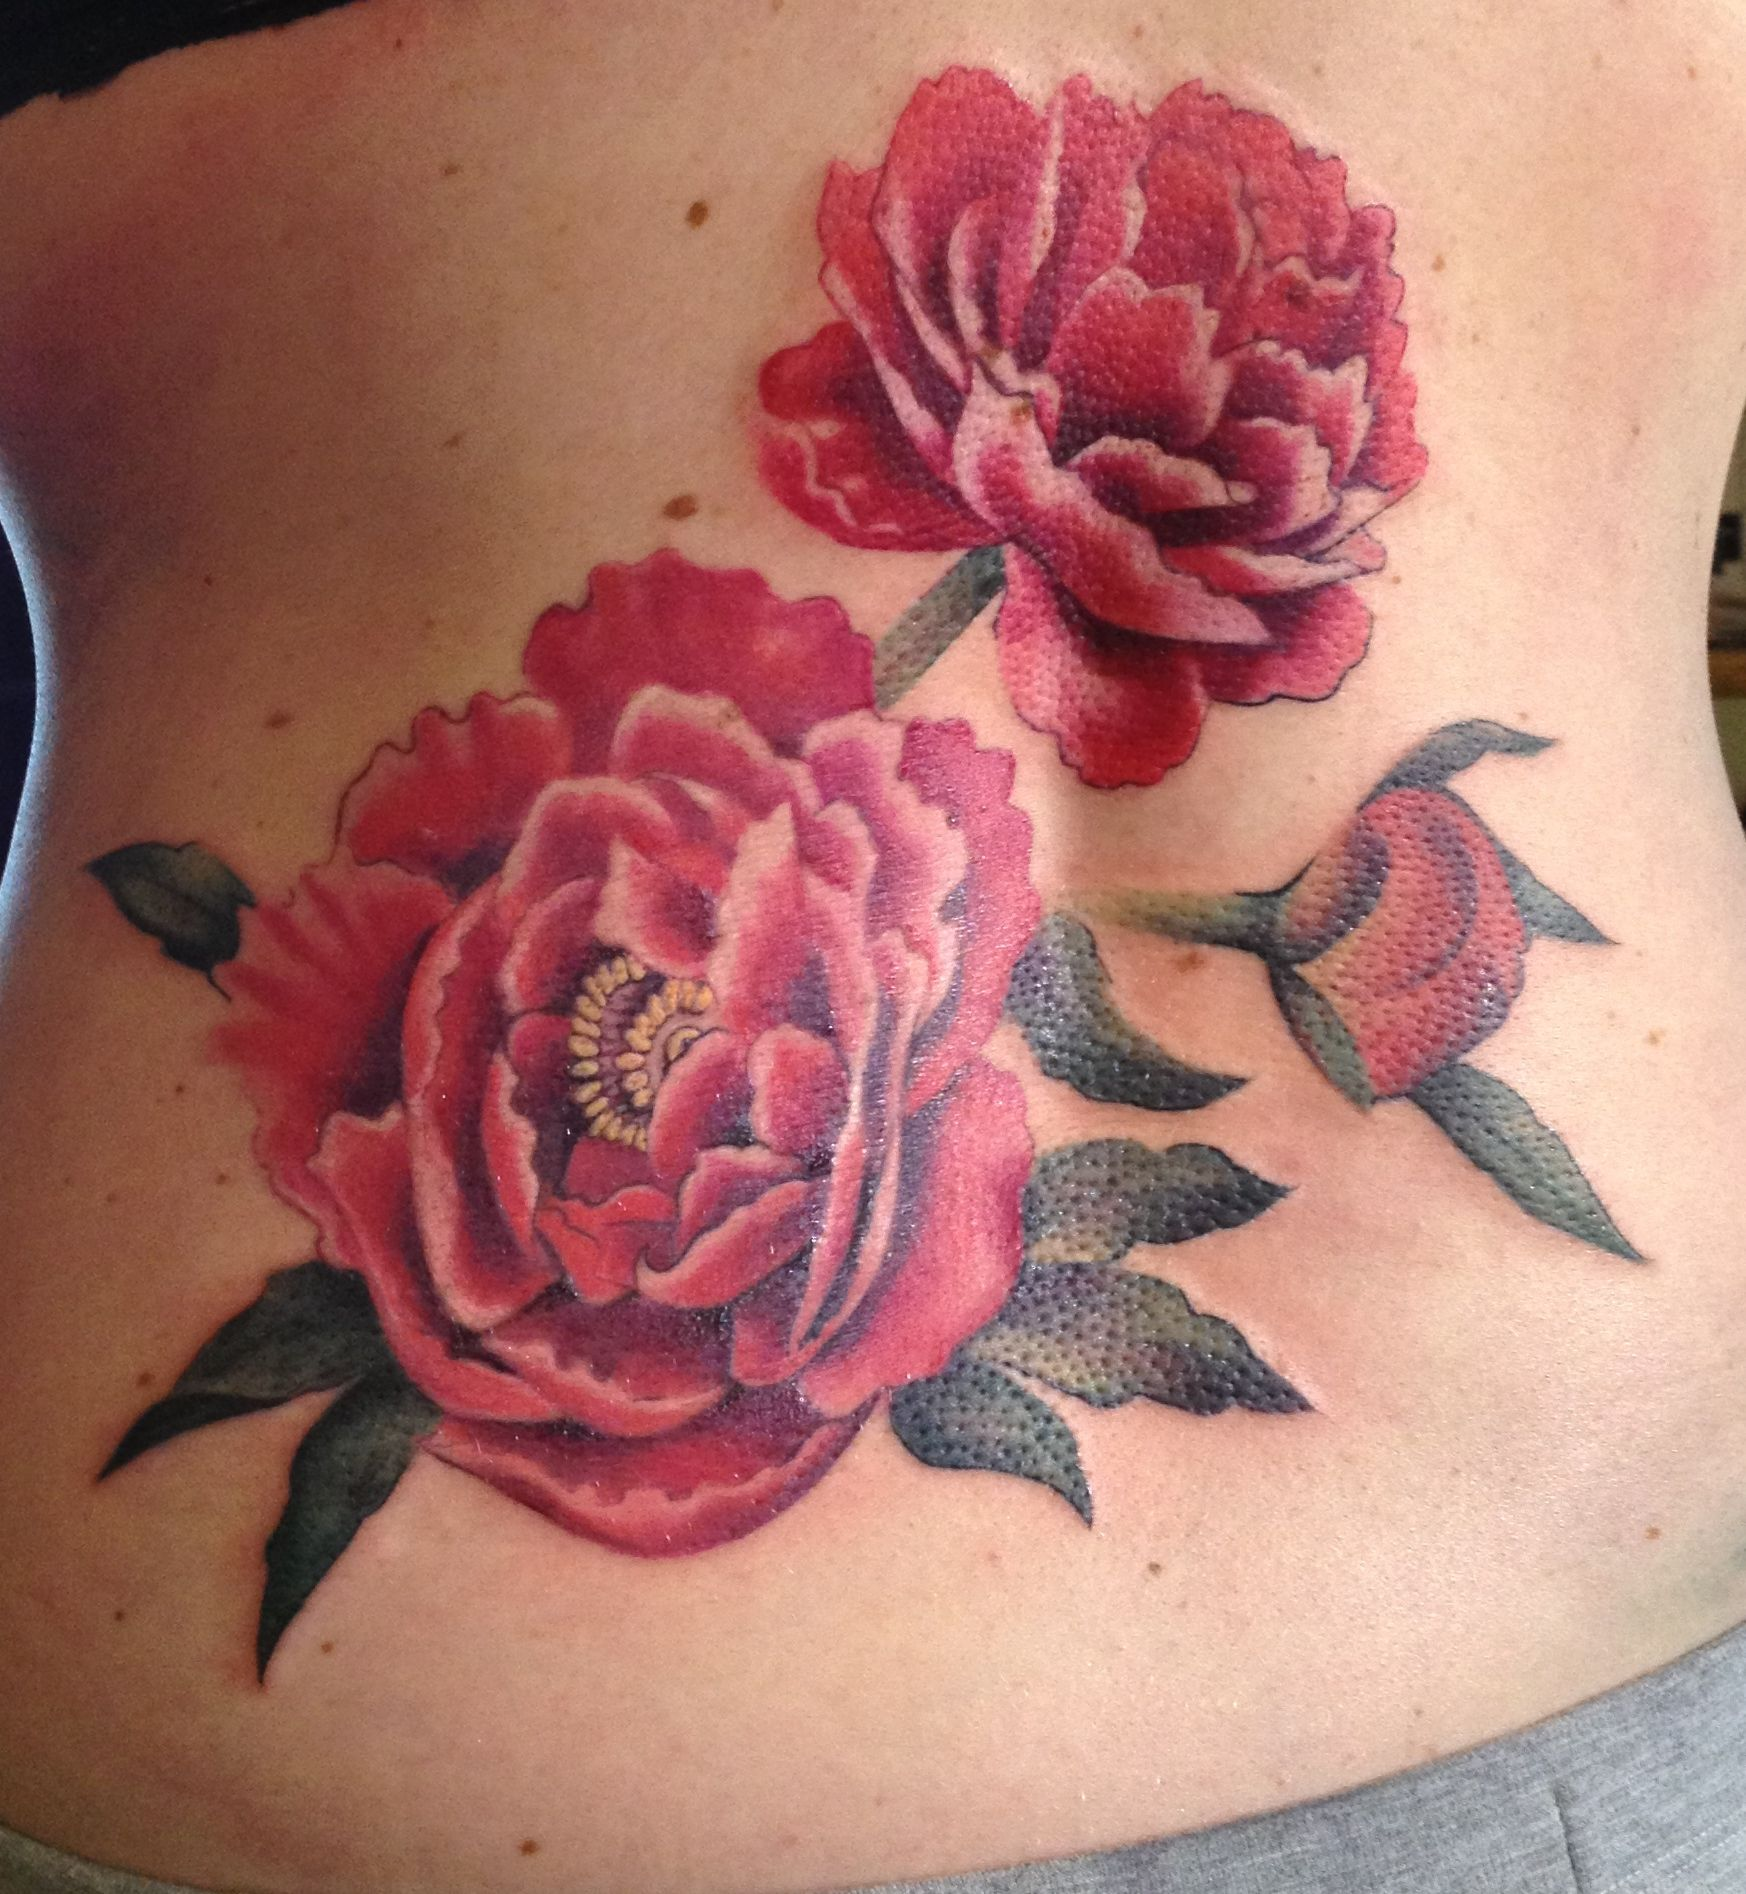 10 Floral Tattoo Artists You Could Trust Your Skin To: Pin On Beautiful Things